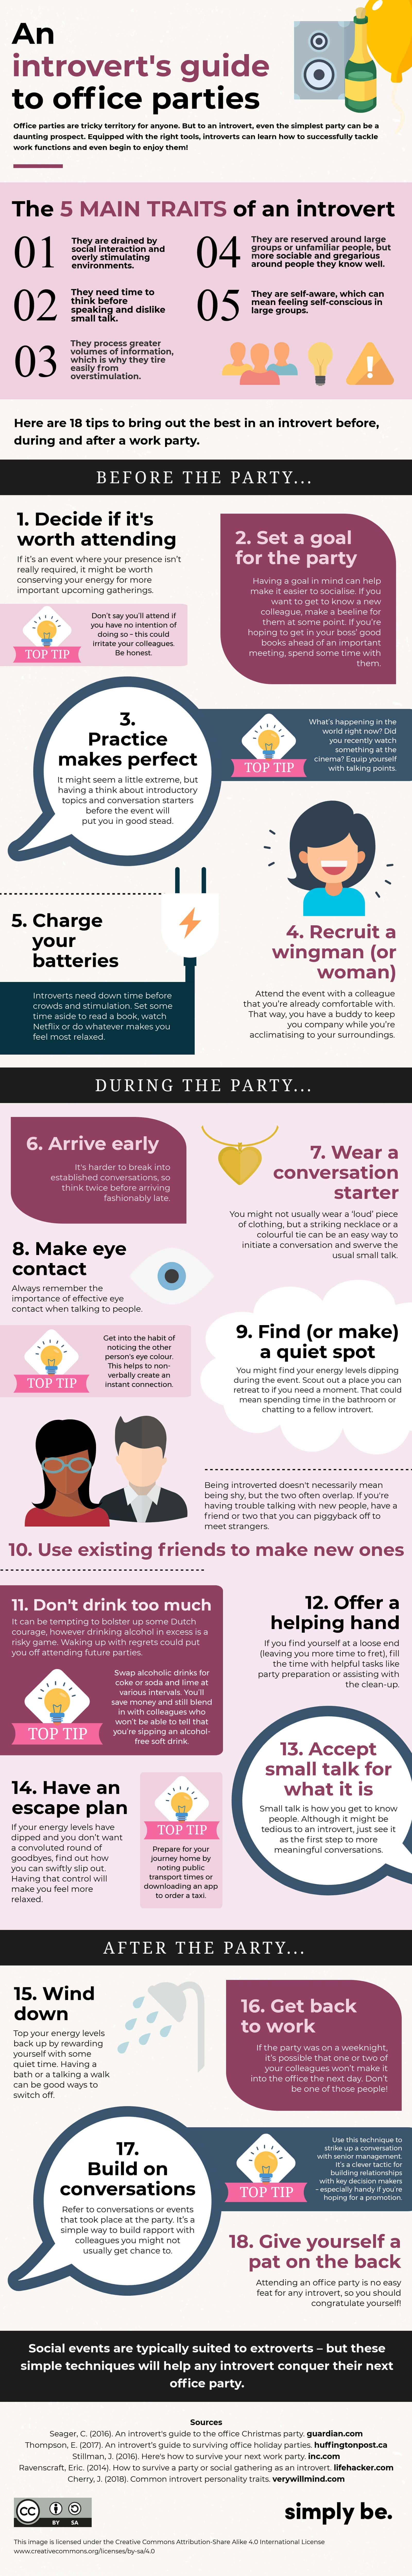 An introvert's guide to office parties